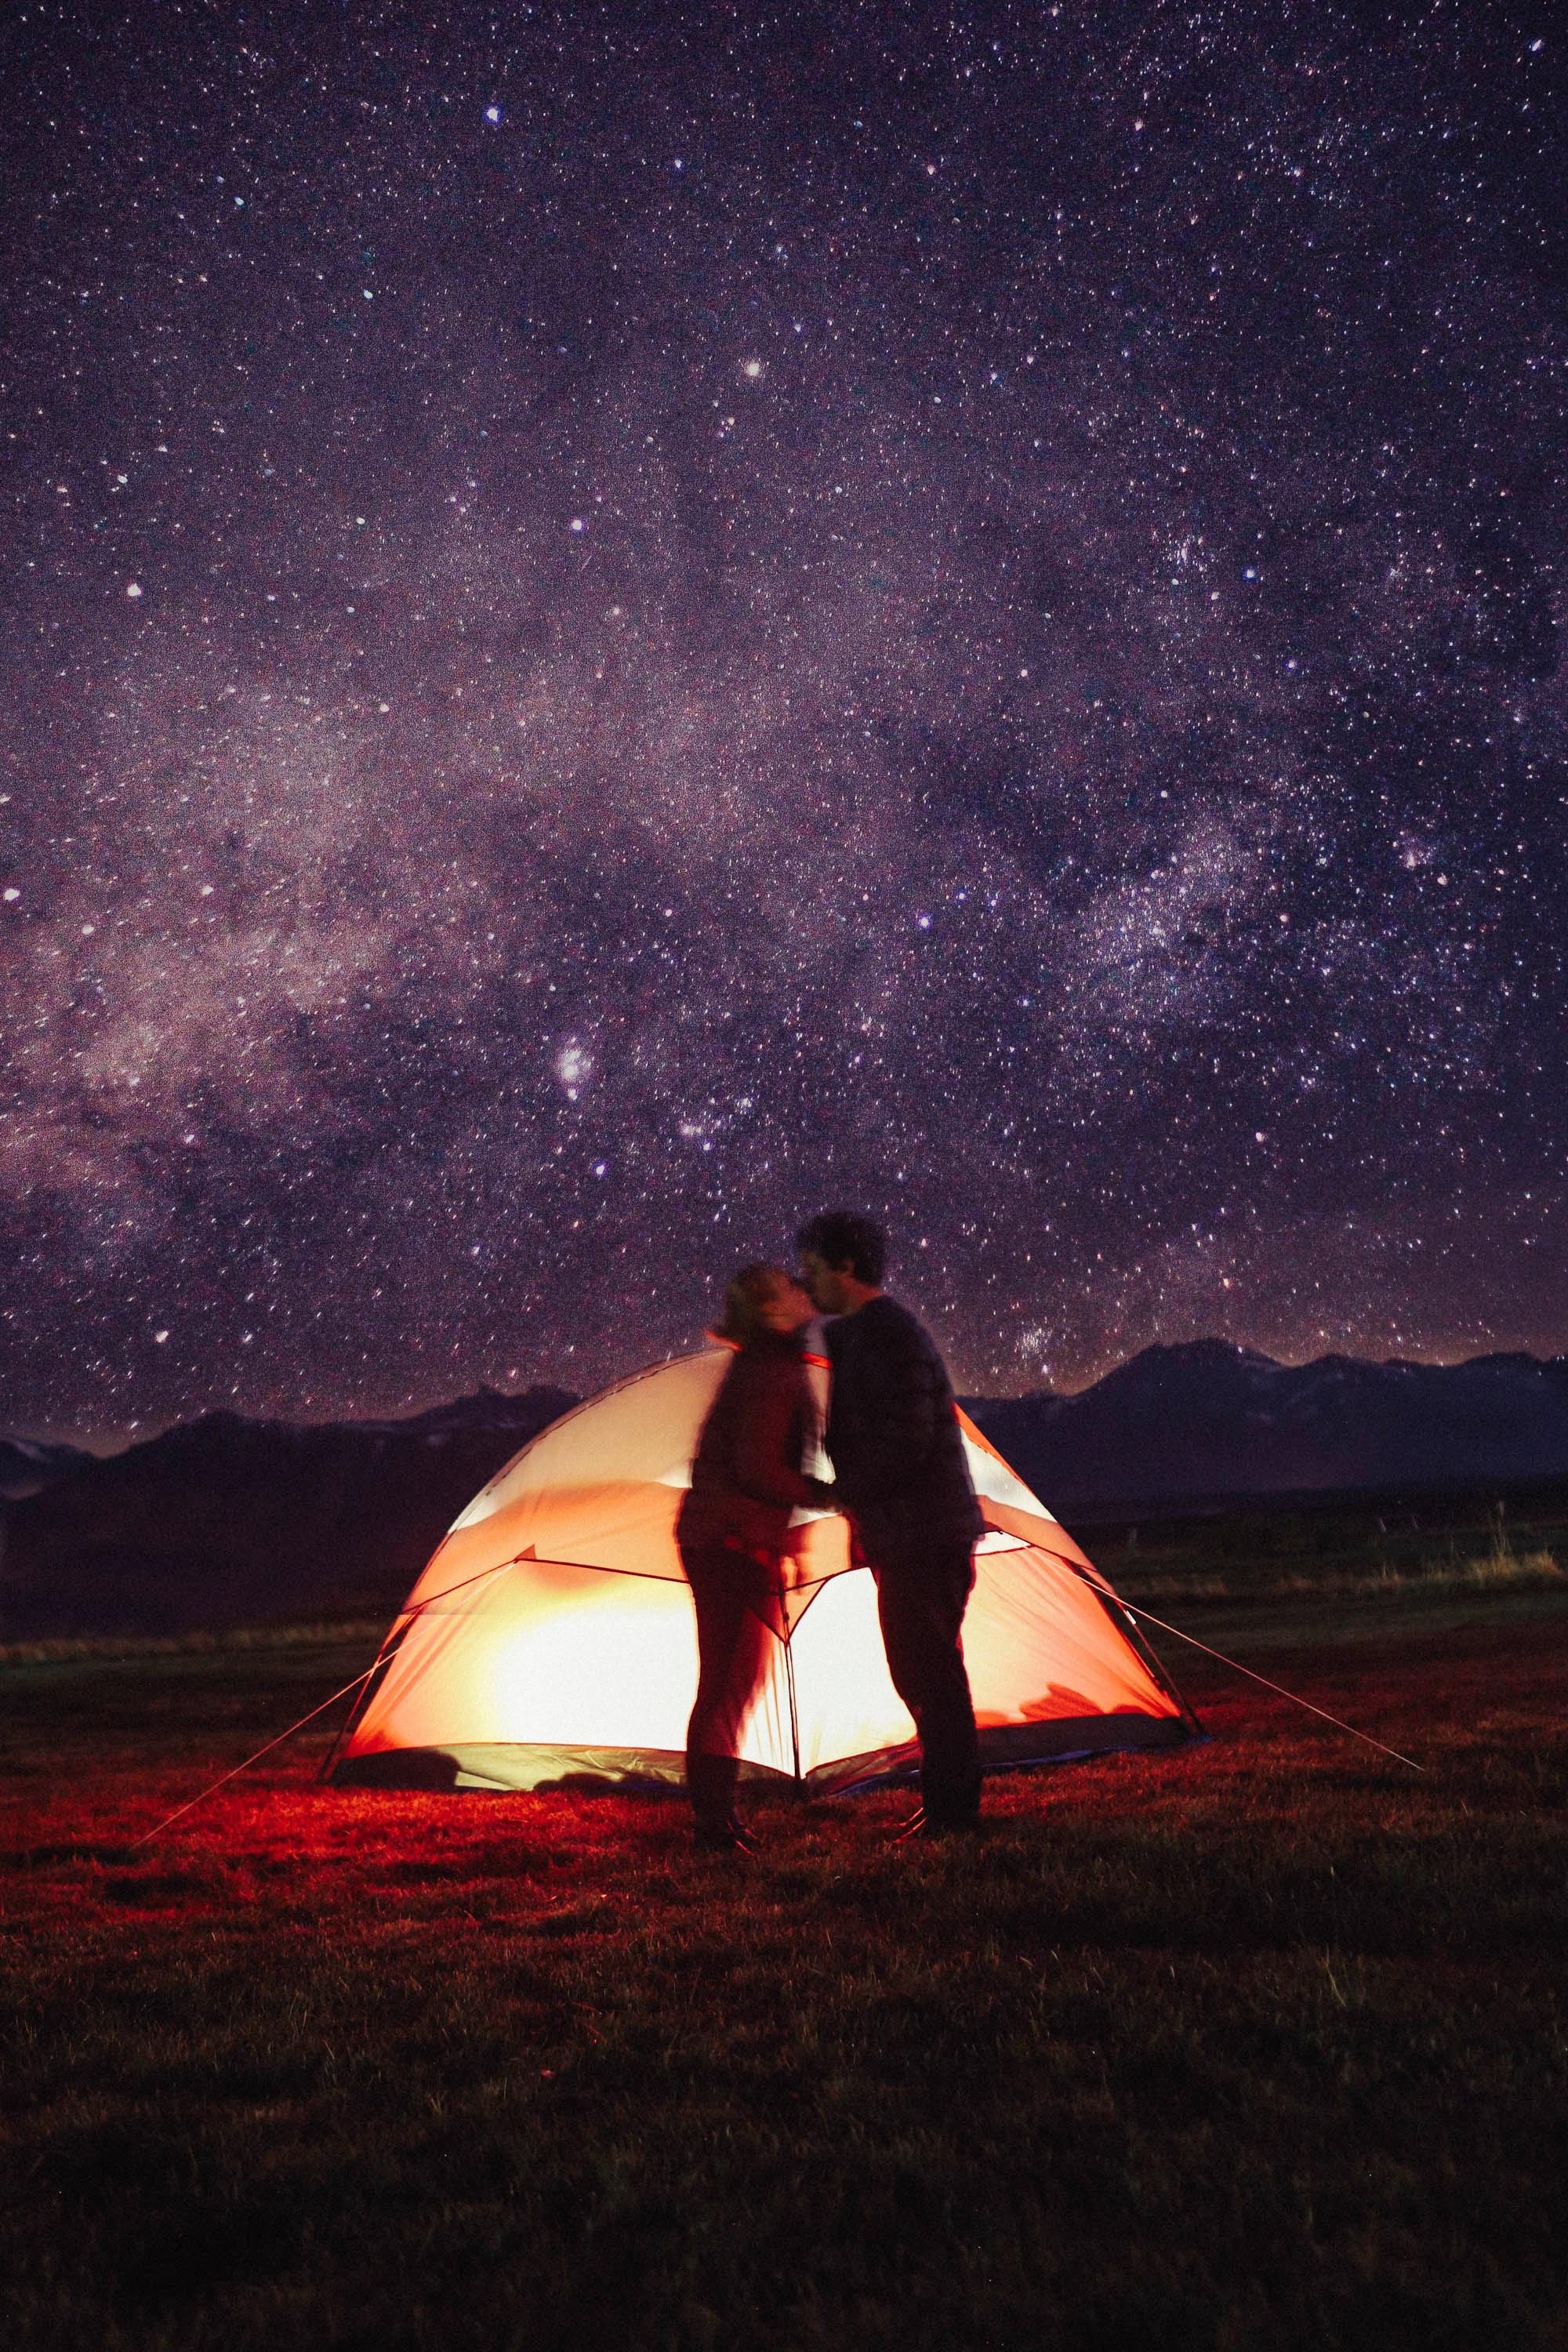 people kissing in front of a glowing tent on a starry night